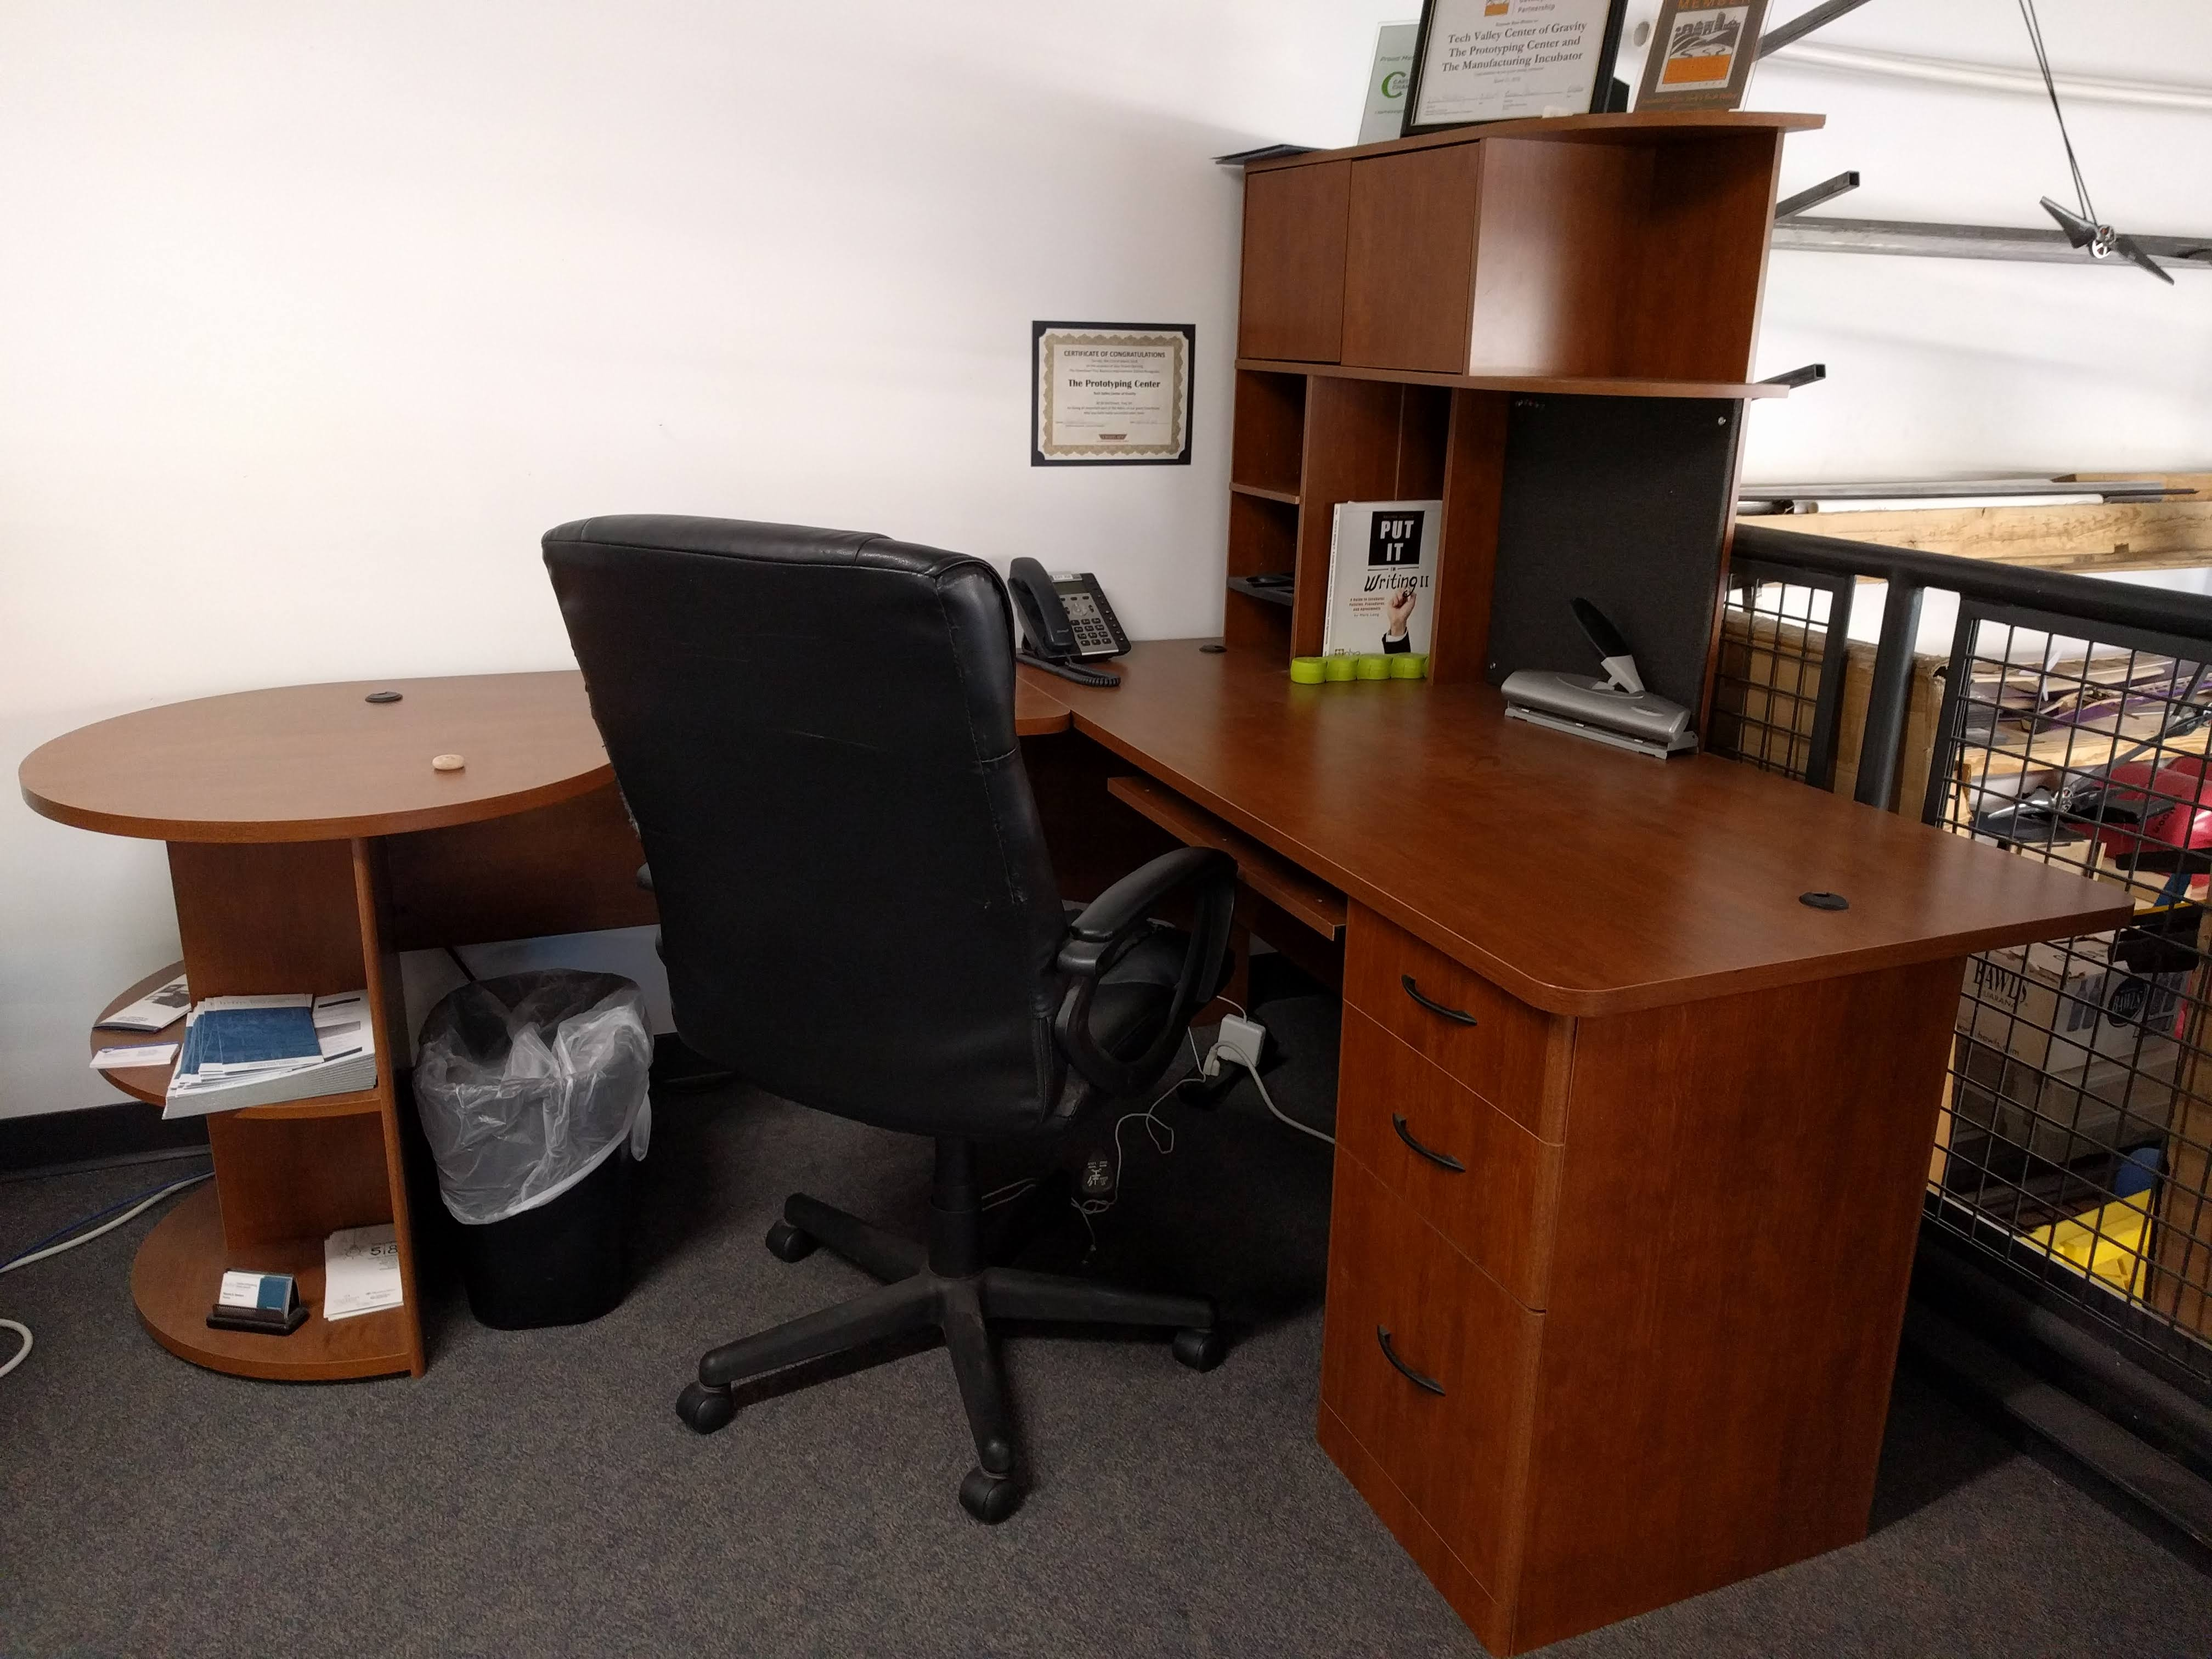 Rent this desk for 90 per month!